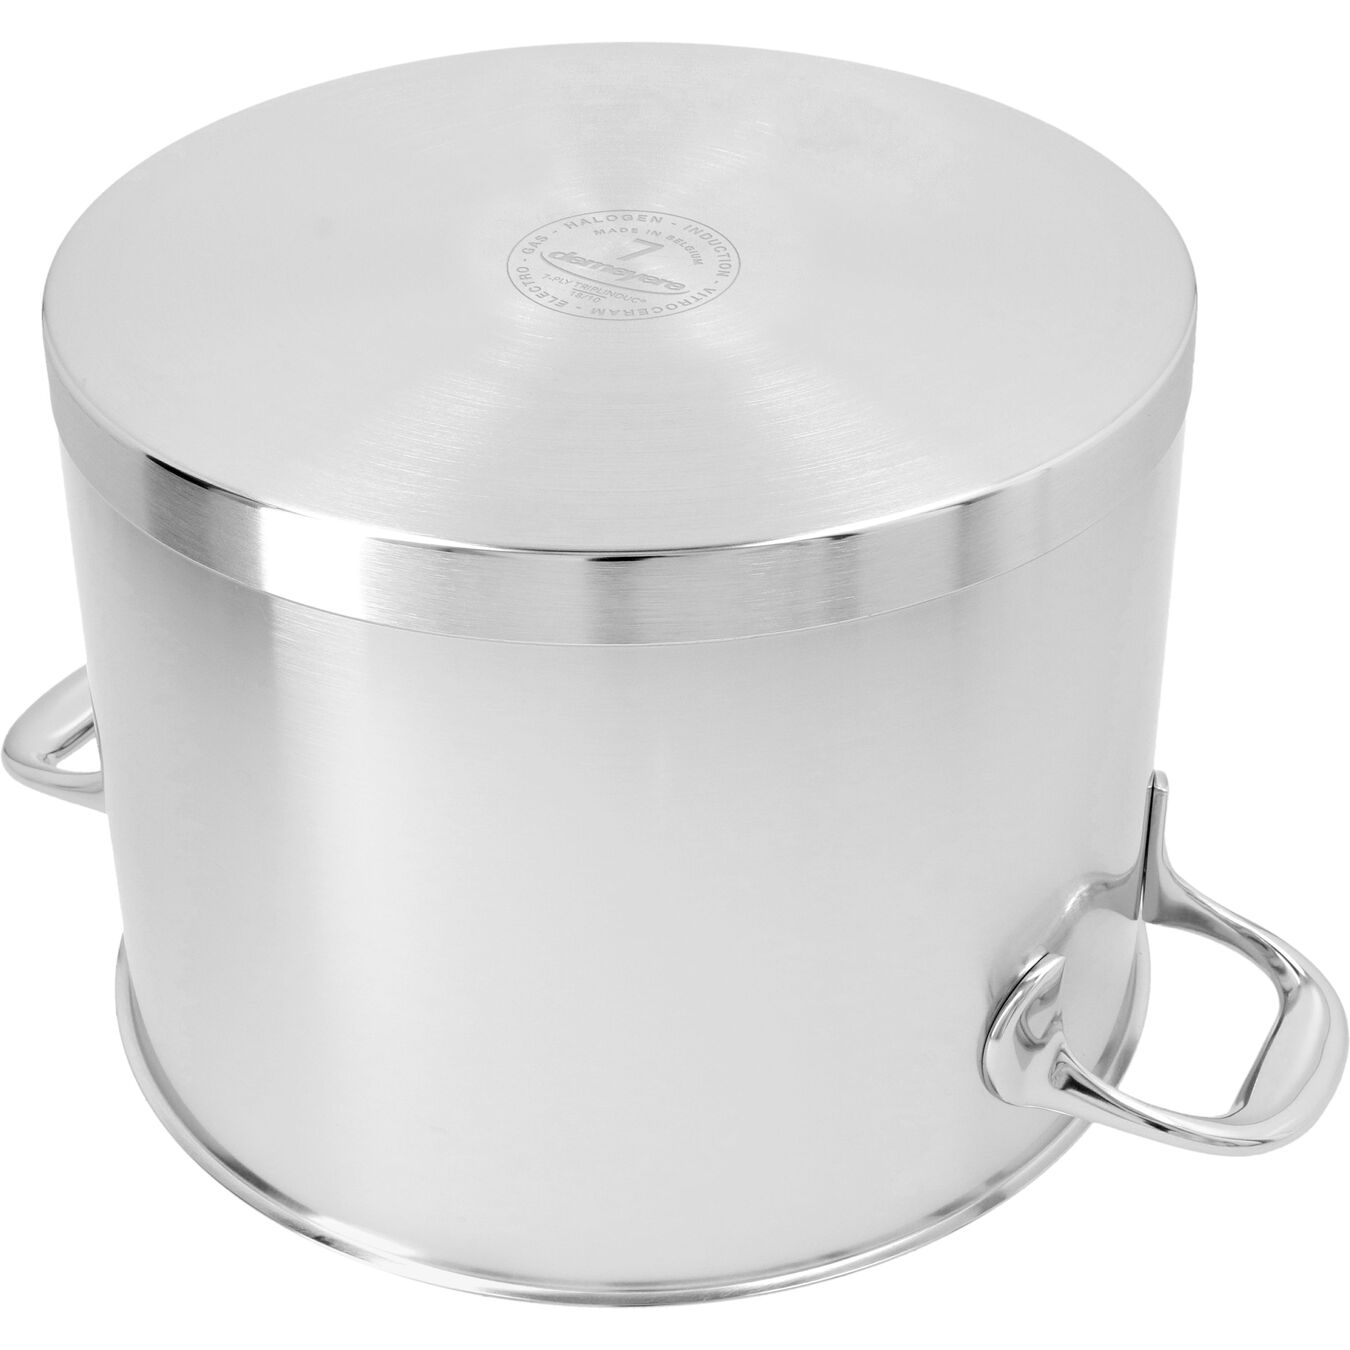 8 l 18/10 Stainless Steel Stock pot with lid,,large 5